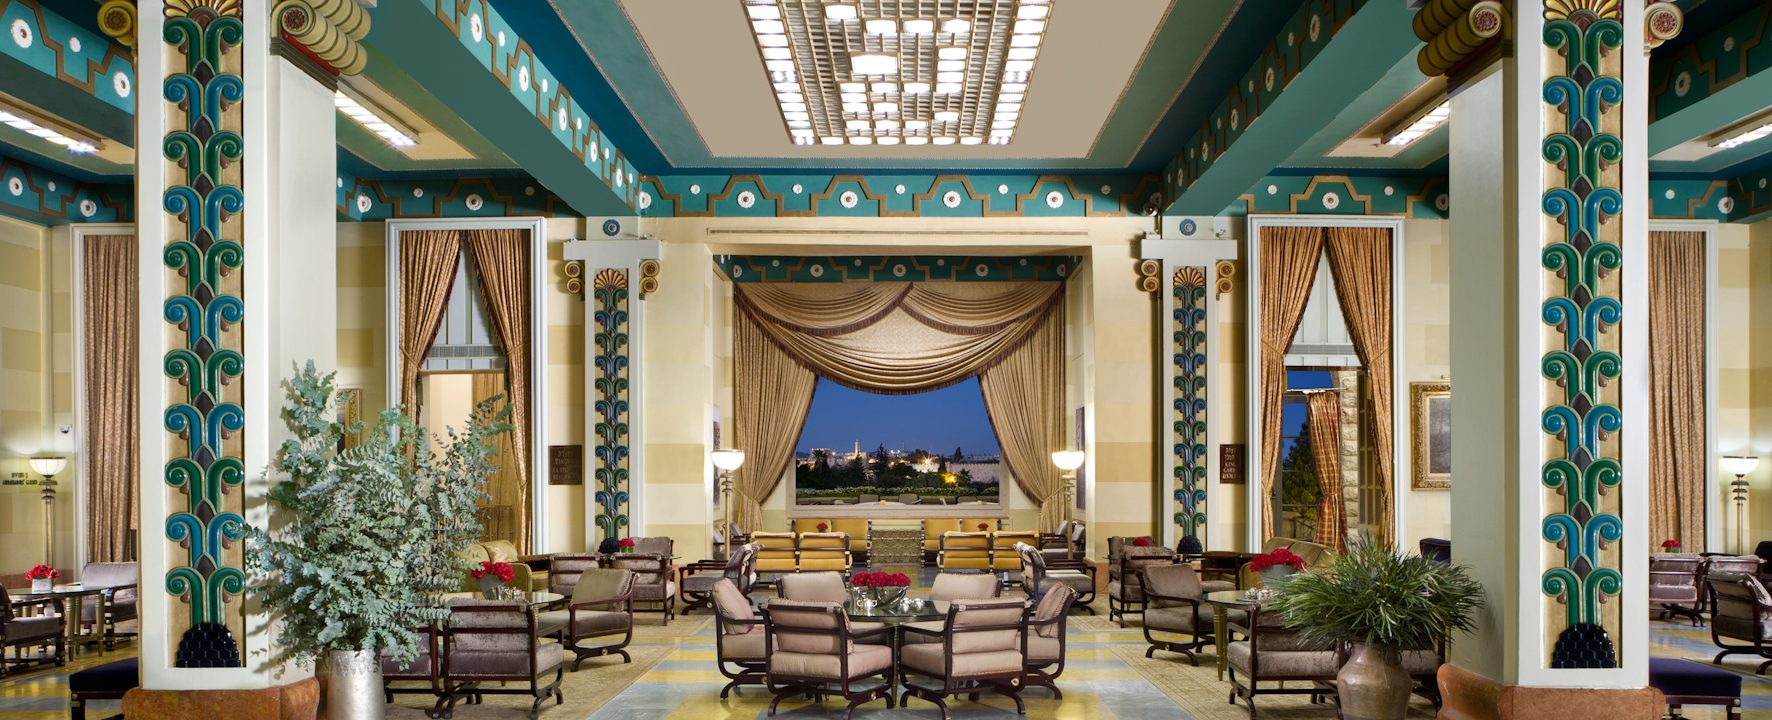 Prince William slept here: Take a vicarious tour of Jerusalem's King David hotel